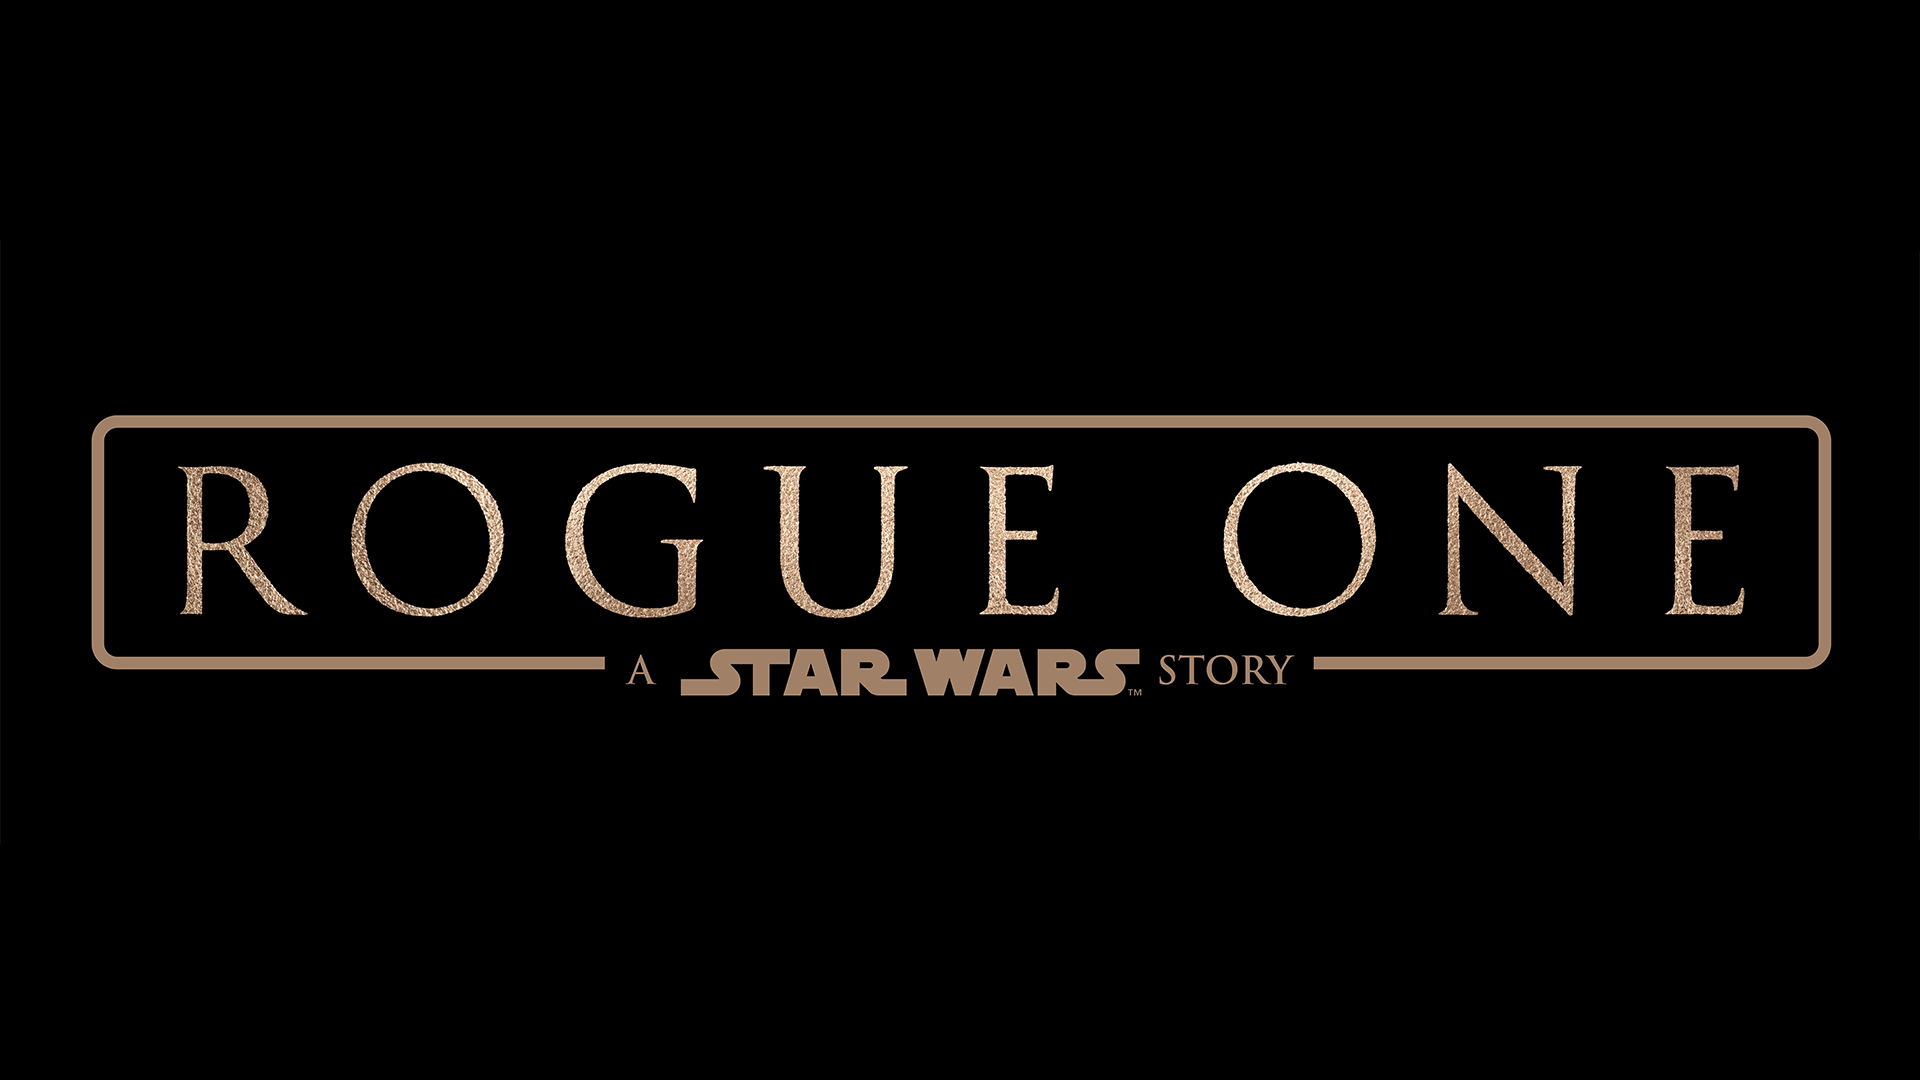 Star Wars Rogue One Wallpaper 1920x1080 Need Iphone 6s Plus Wallpaper Background For Iphone6splus Fol Rogue One Star Wars Star Wars Rogue One Trailer